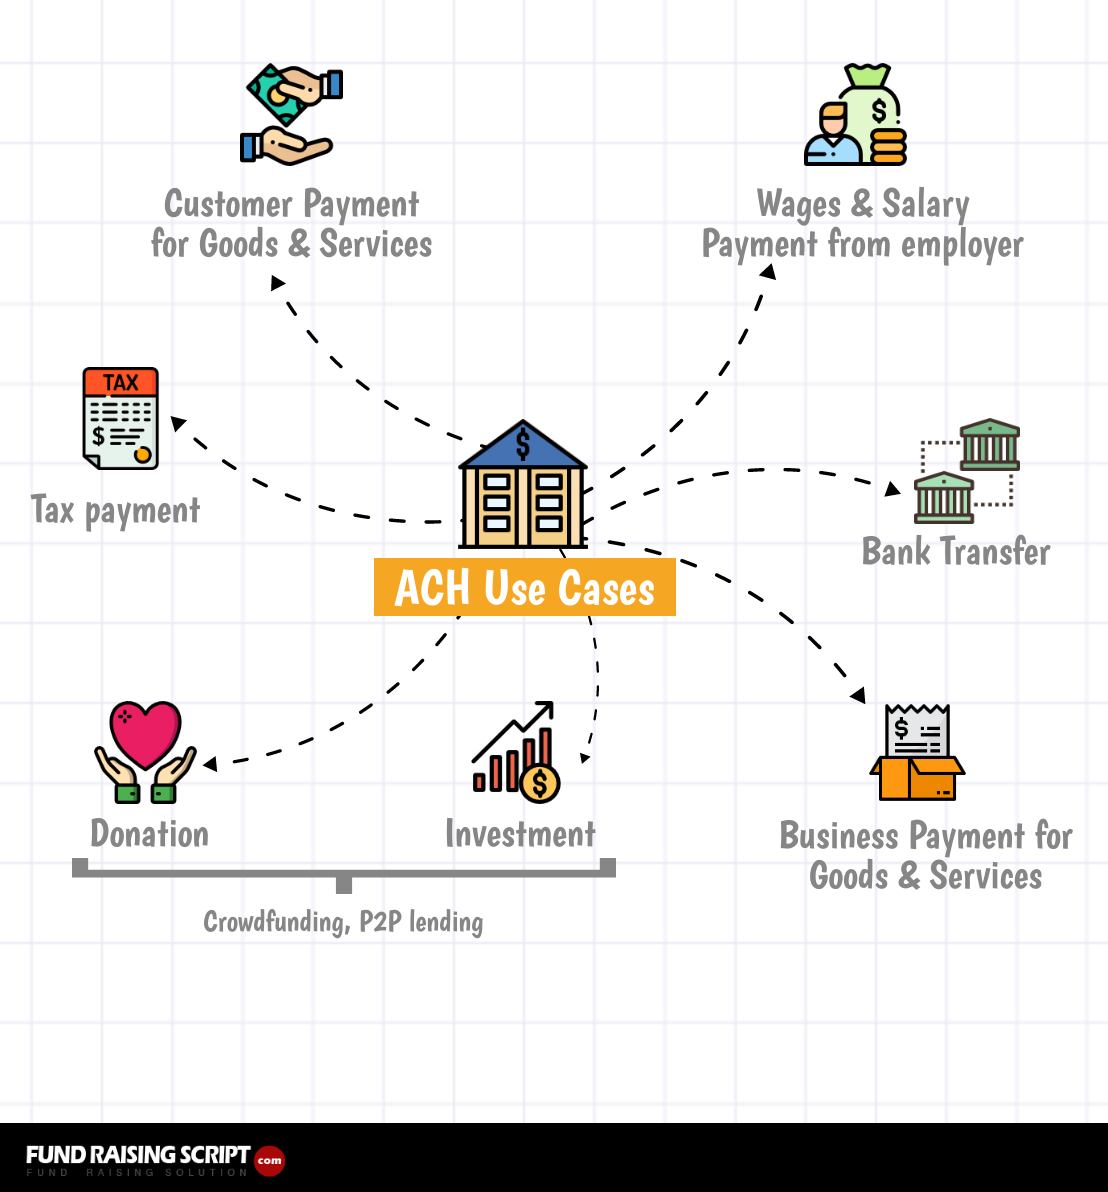 ACH Use Cases